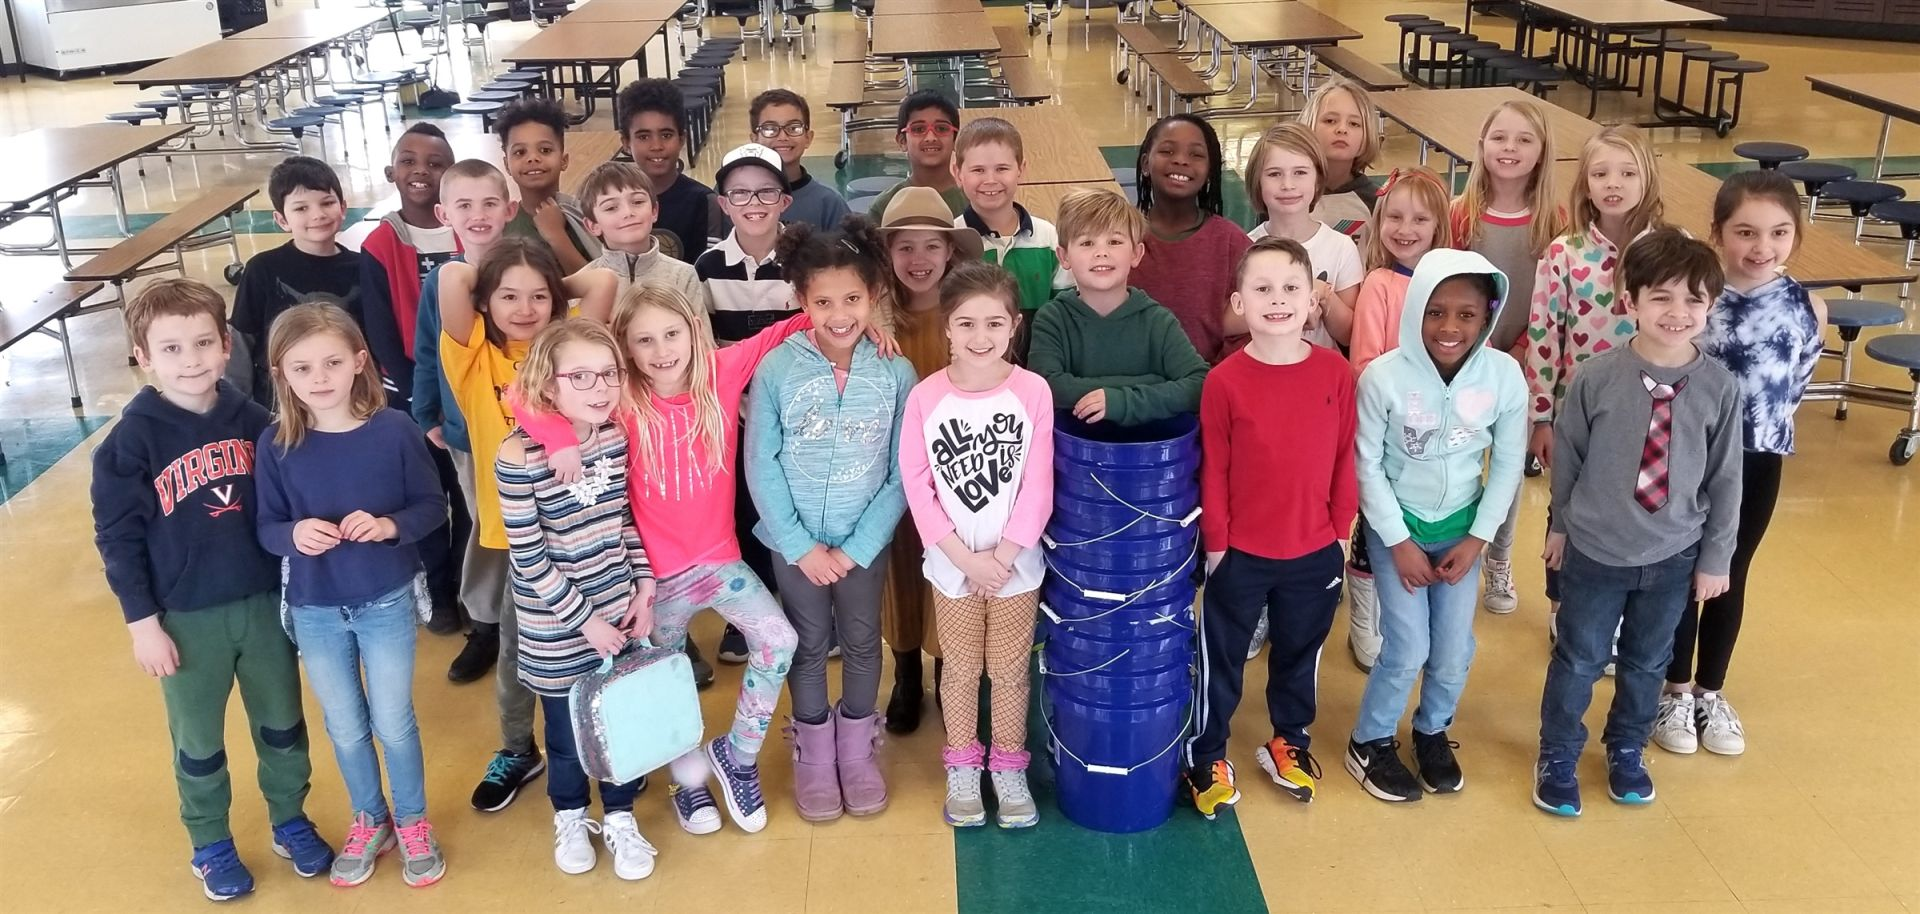 With the World Wildlife Fund on their side, Orchard second graders share their data with other students at various town meetings here at the school, as well as participate in their first national school food waste audit. In case you forgot, these are second graders! Oh, the power of Progressive ed.